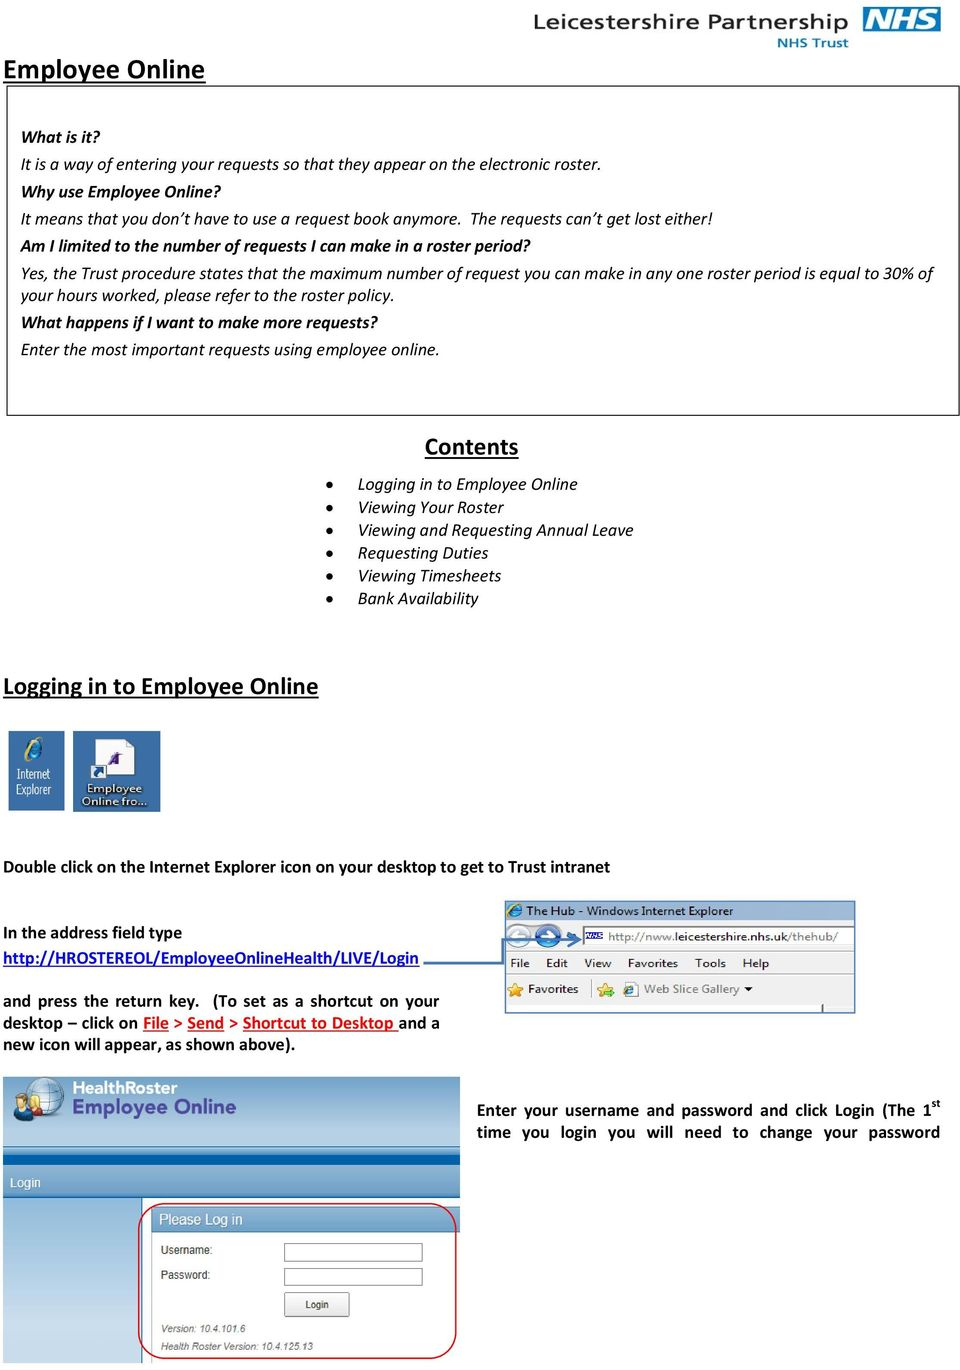 Employee Online  Contents  Logging in to Employee Online - PDF